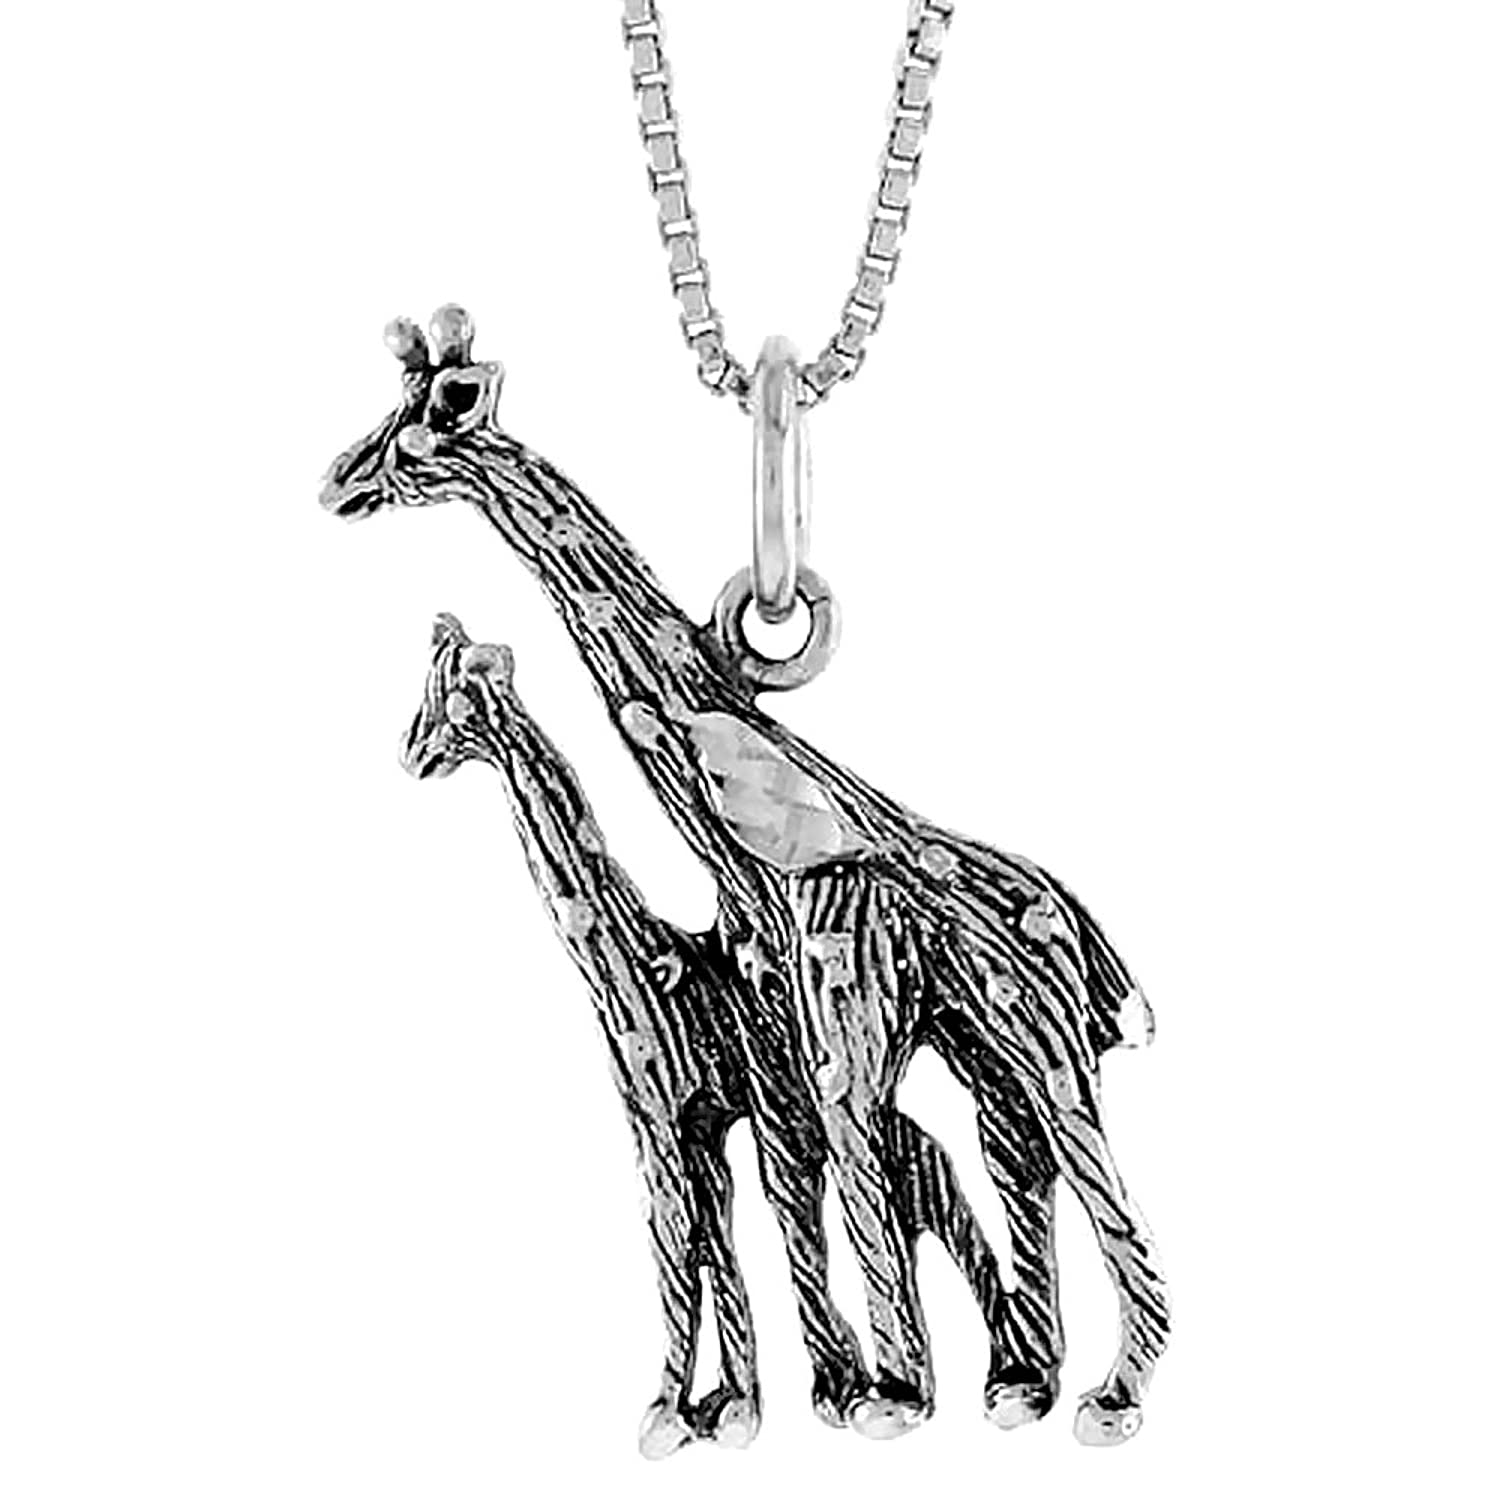 hugging necklace silver and sterling giraffe pendant